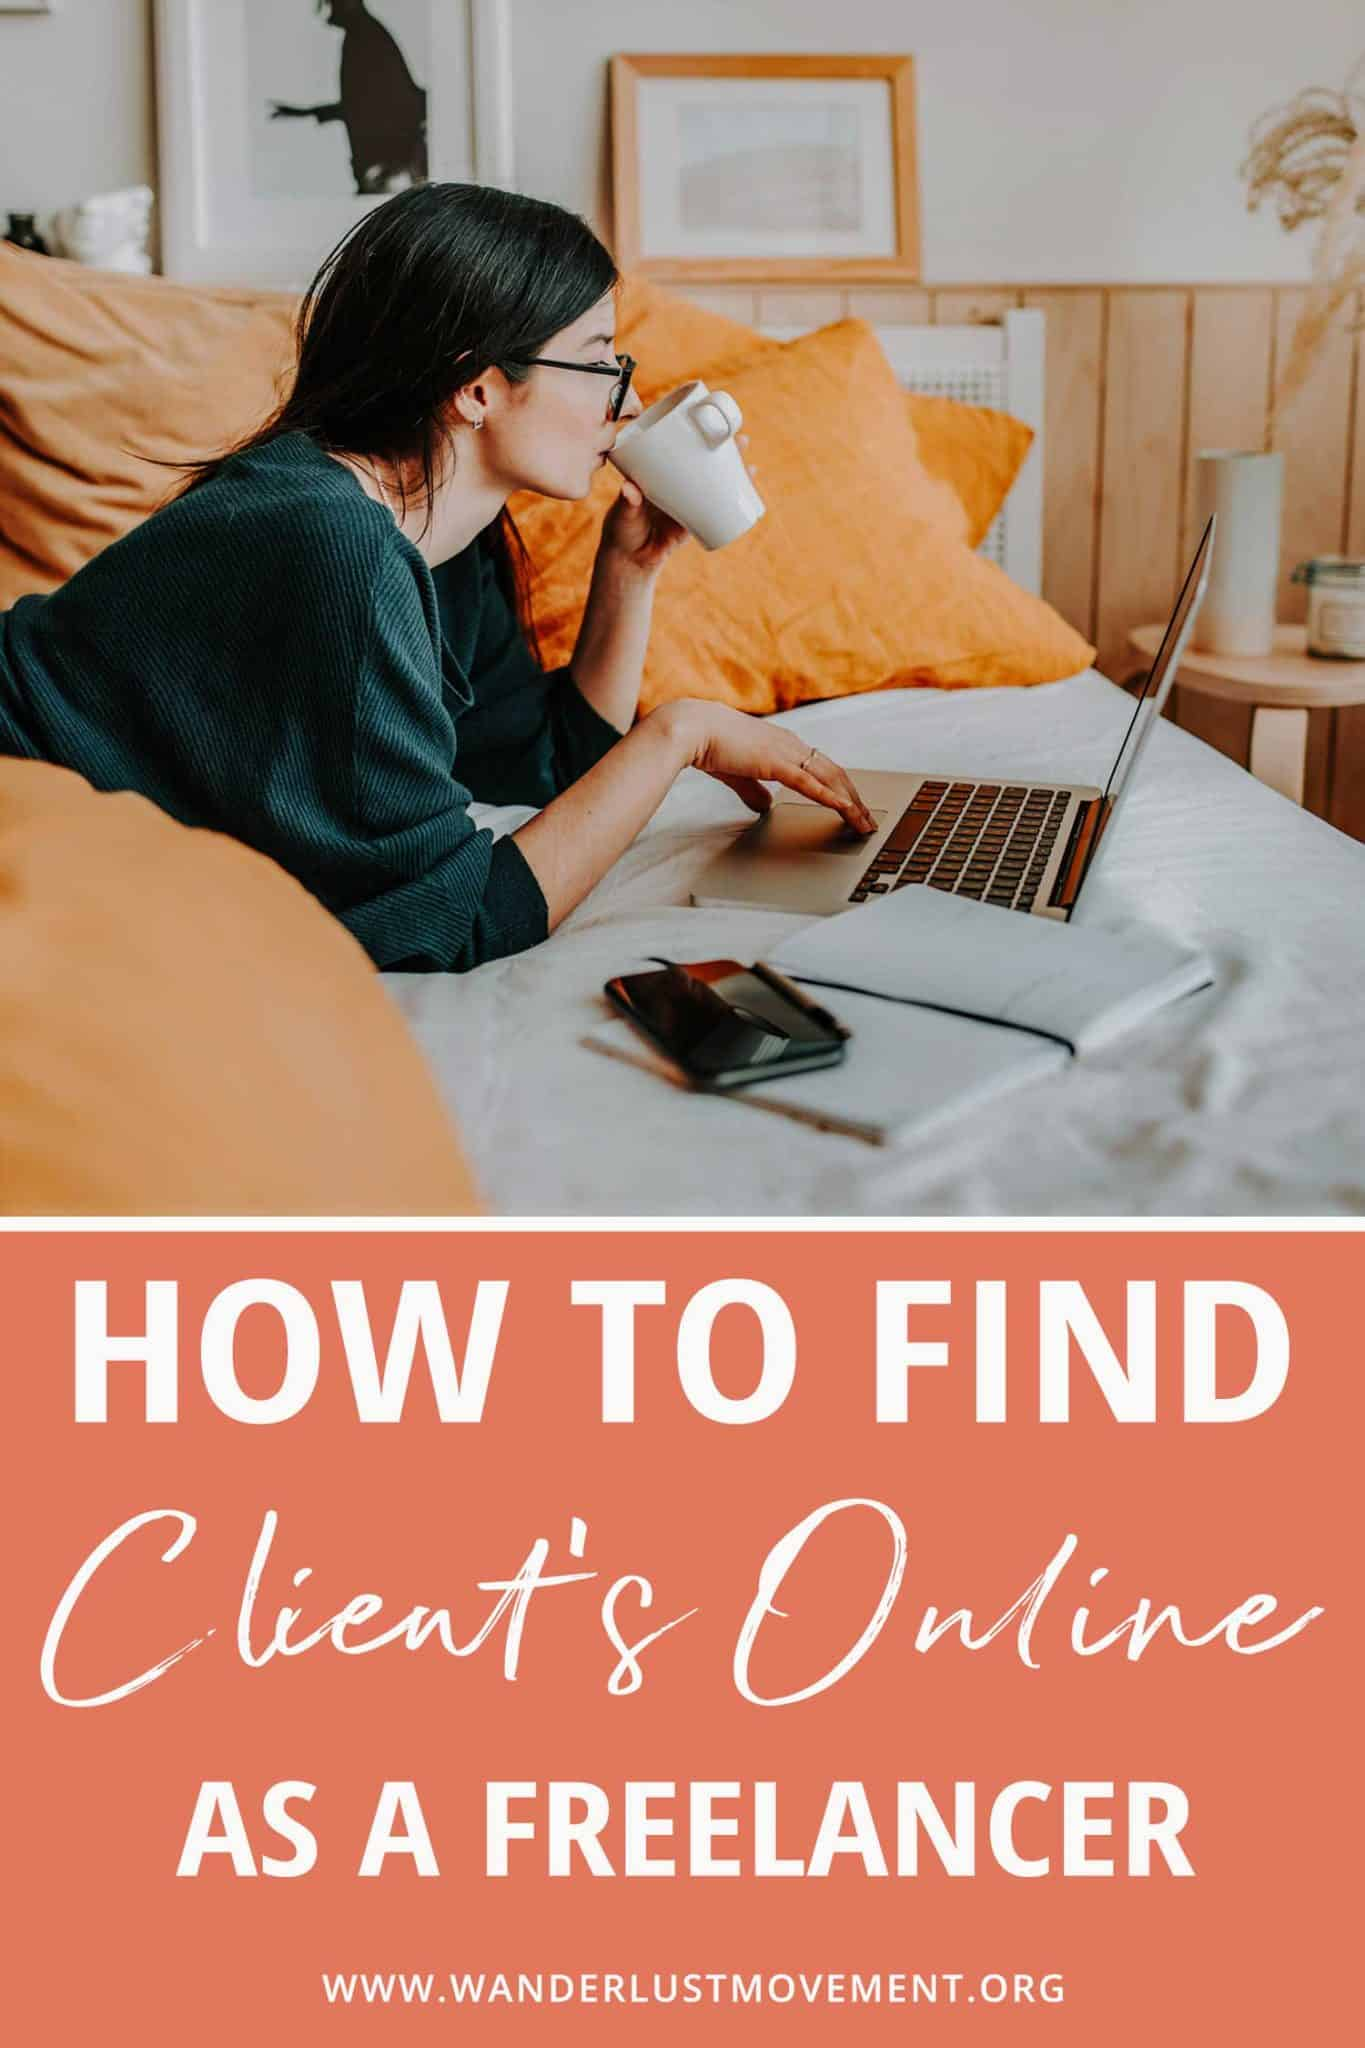 How to Find Clients Online: 10+ Actionable Strategies for Freelancers